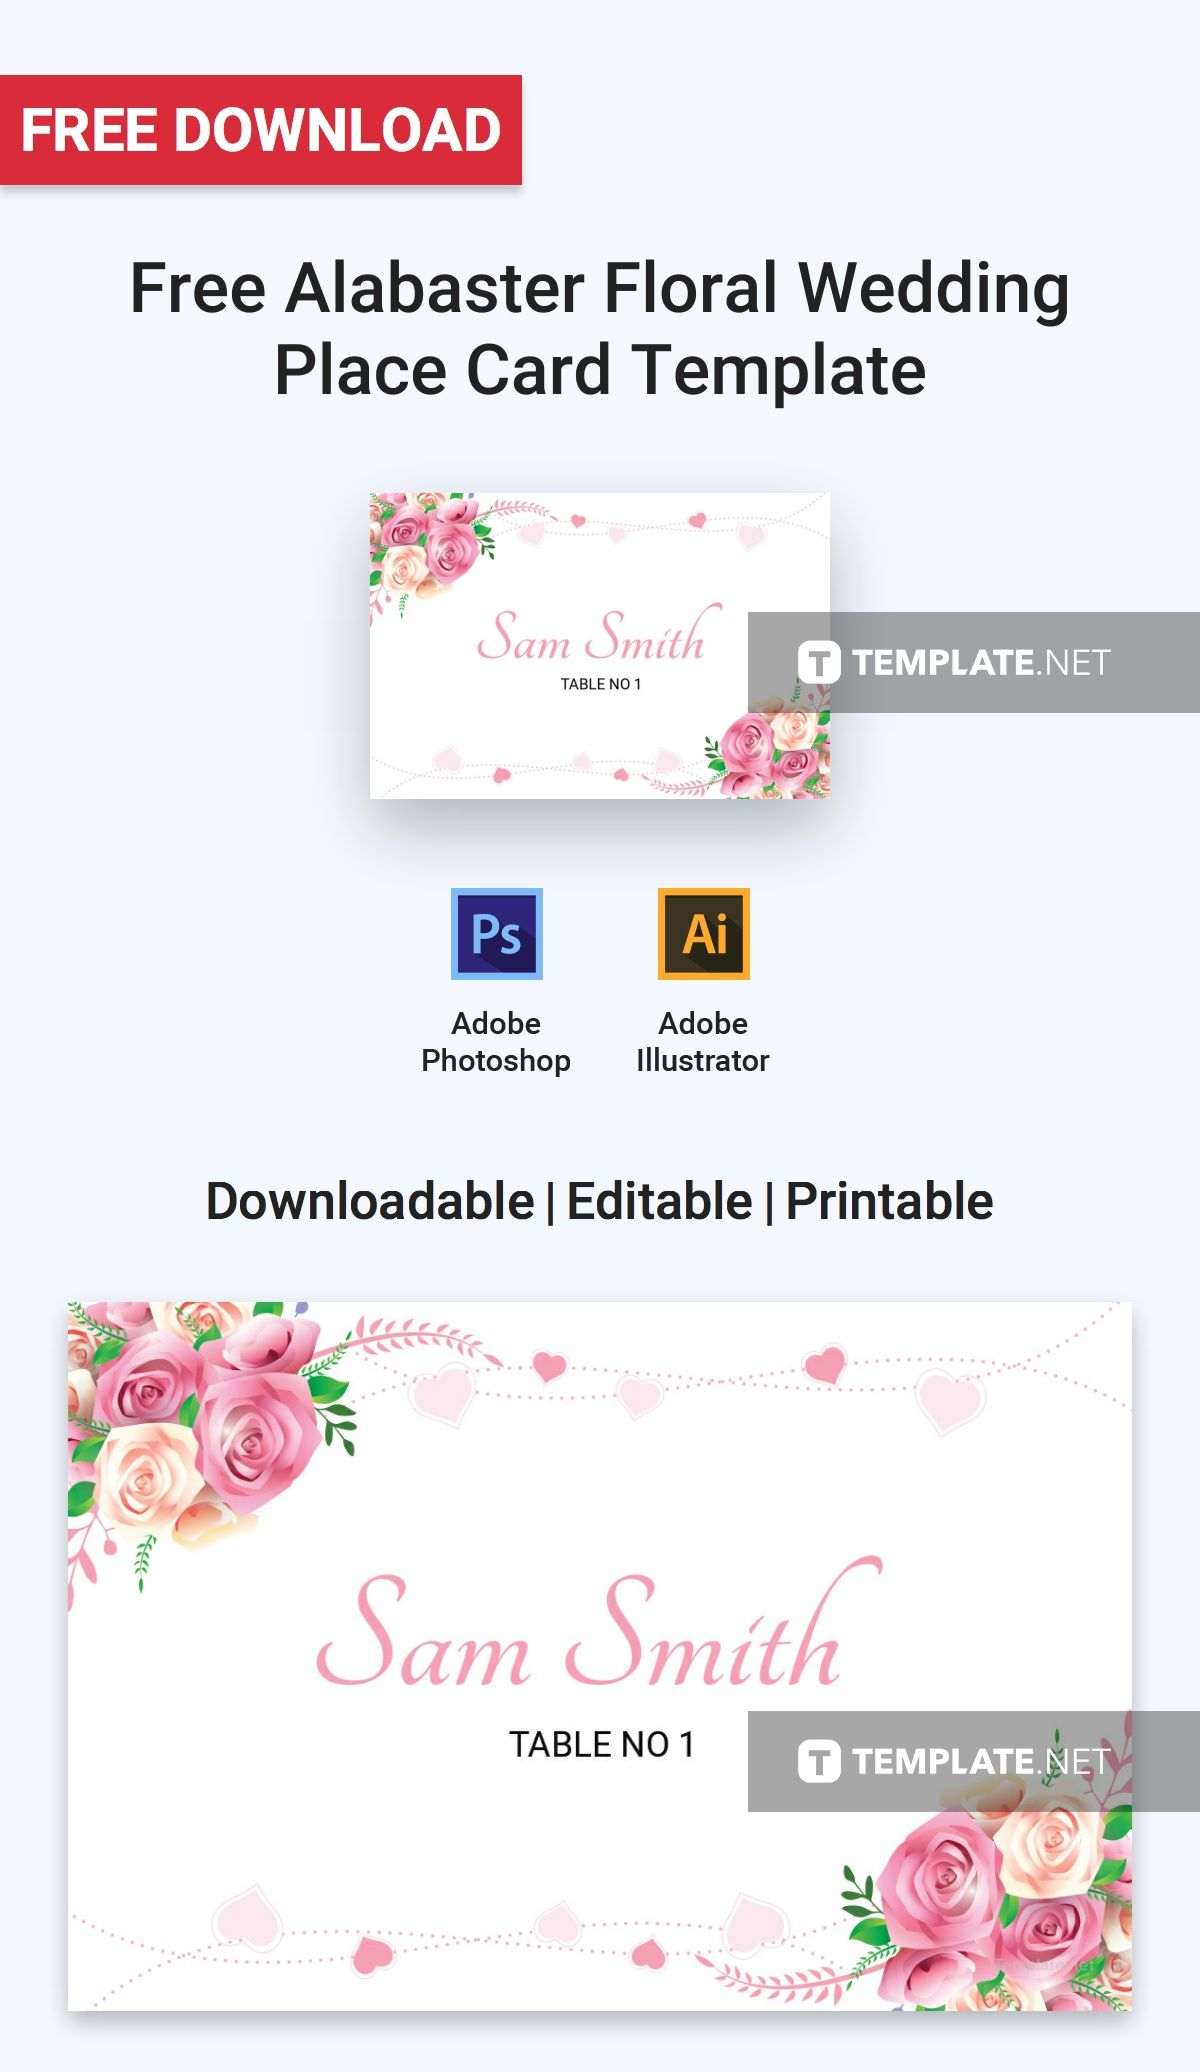 Free Alabaster Floral Wedding Place Card Template Word Doc Psd Apple Mac Pages Illustrator Publisher Place Card Template Wedding Place Cards Wedding Place Card Templates